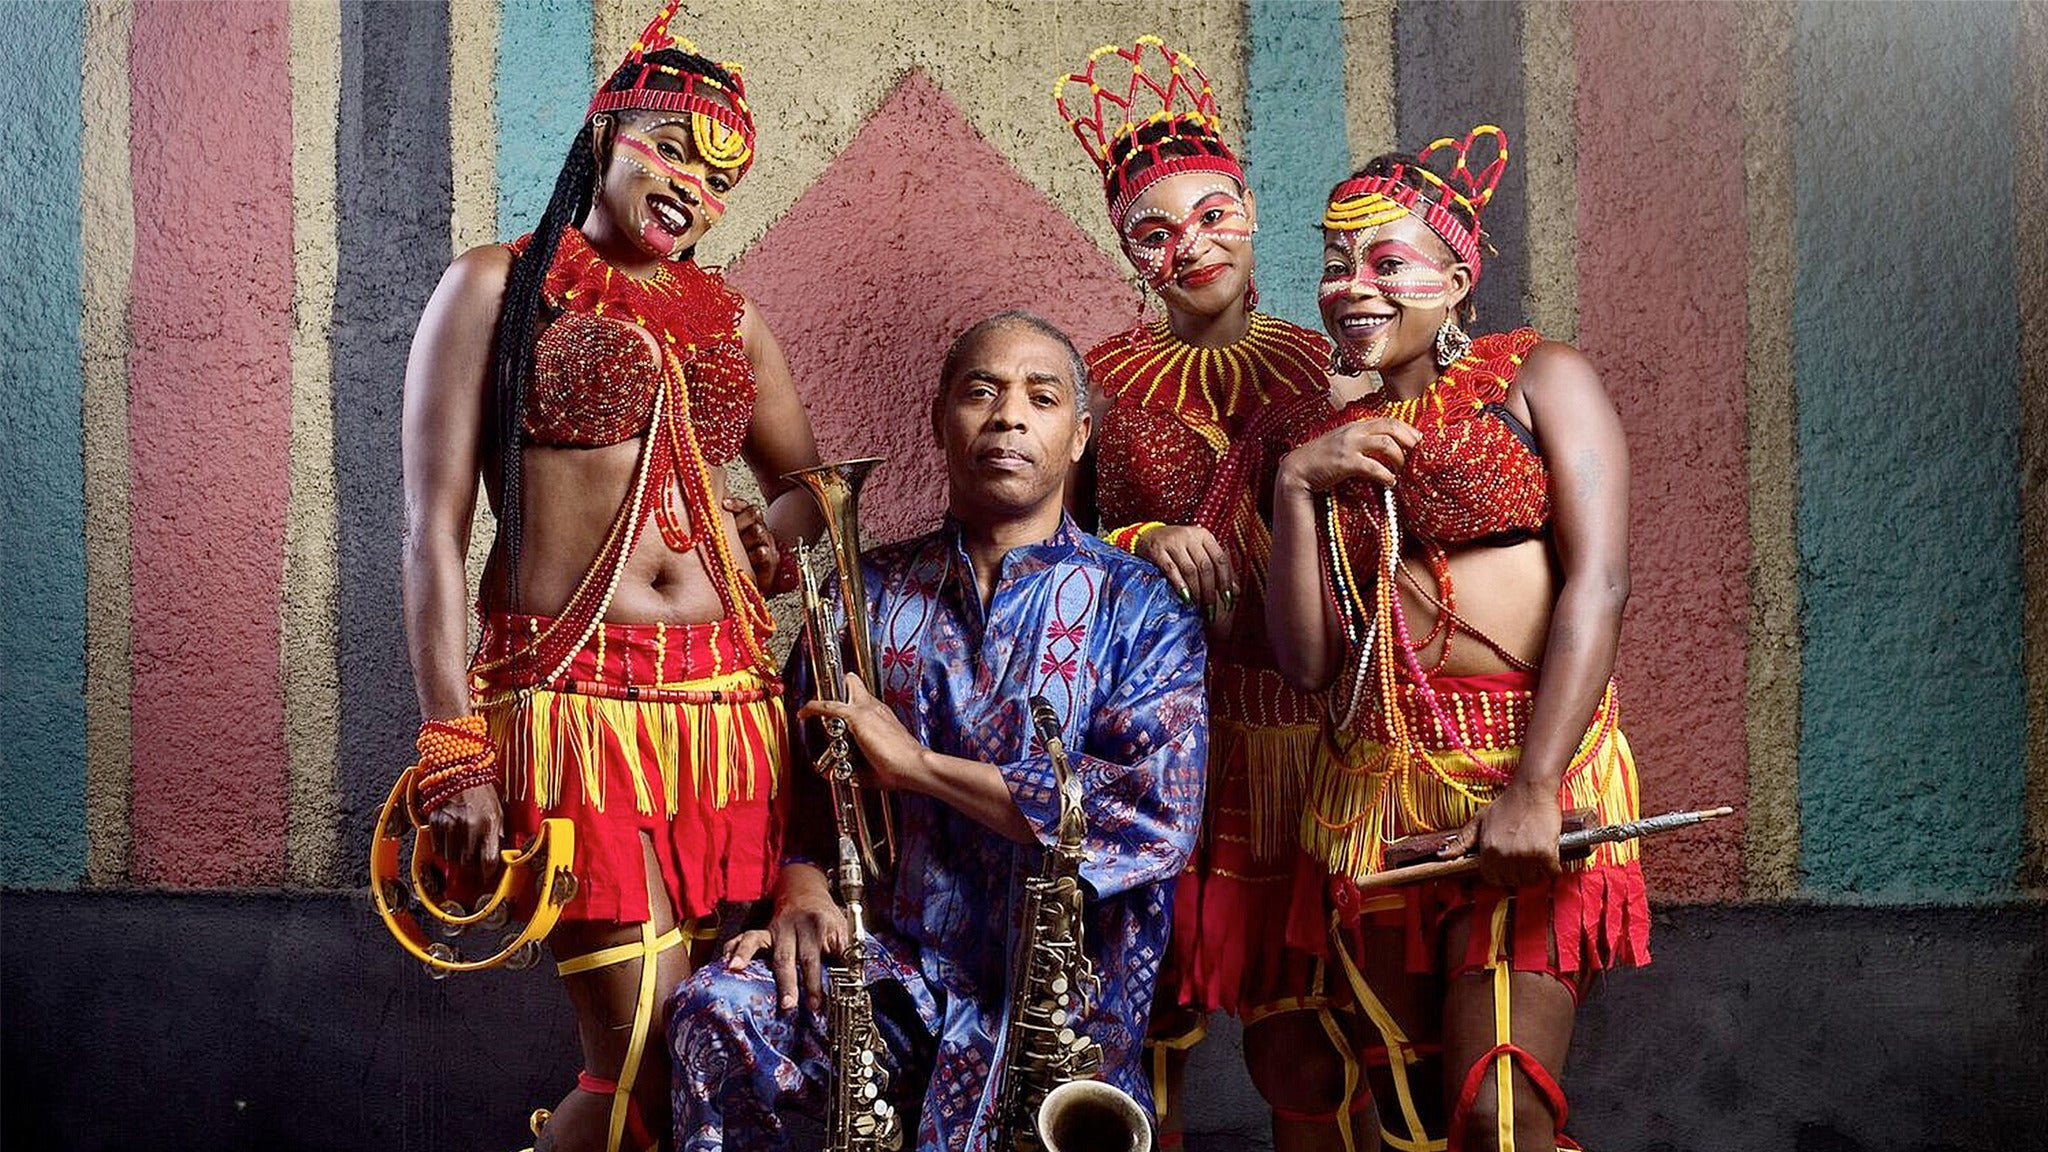 Femi Kuti at The Cotillion